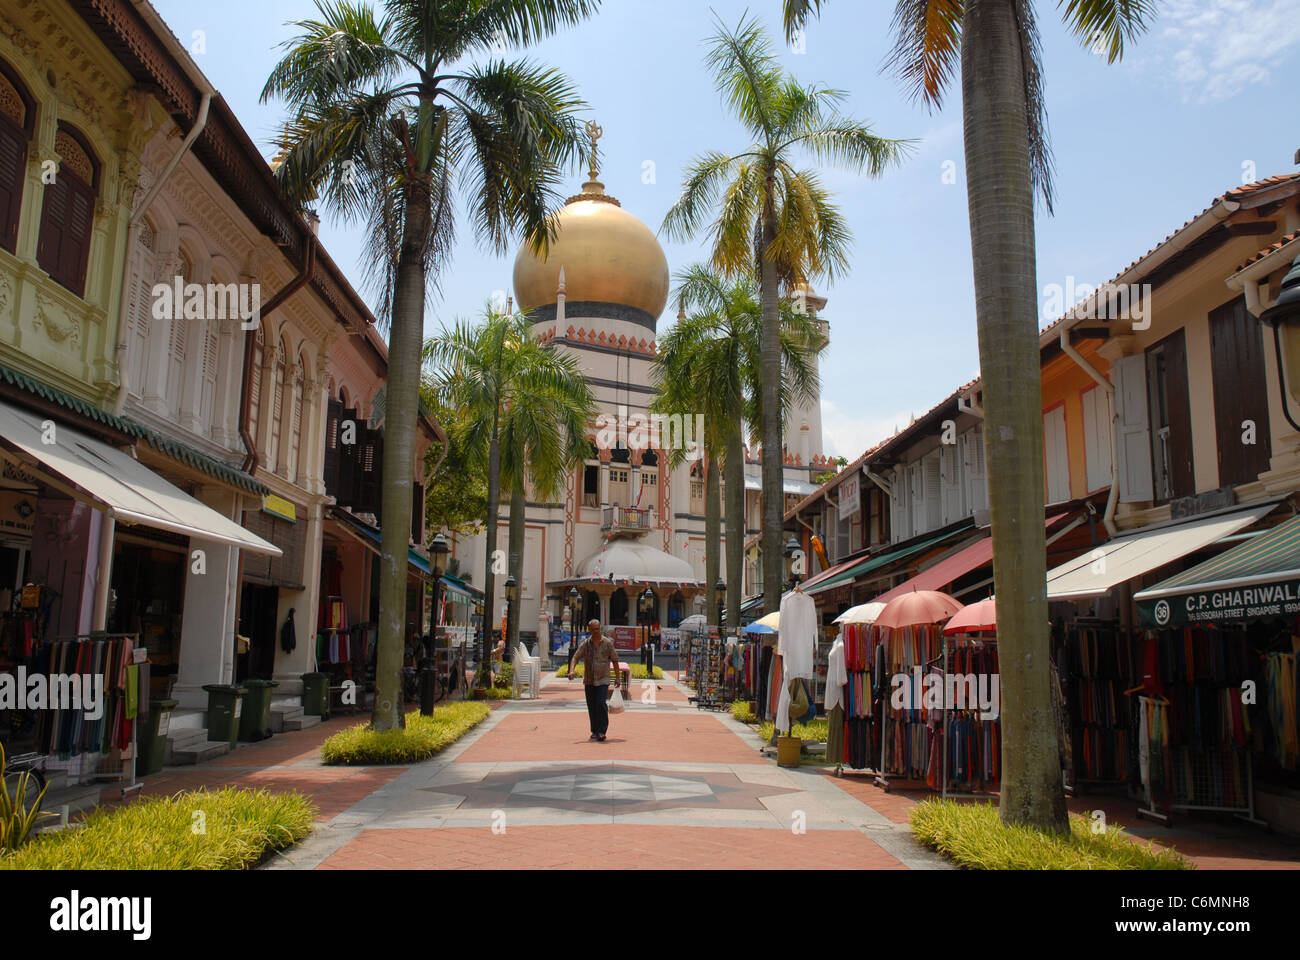 view to Masjid Sultan (Sultan Mosque), from pedestrianised Bussorah Street, (off Muscat Street) Singapore - Stock Image